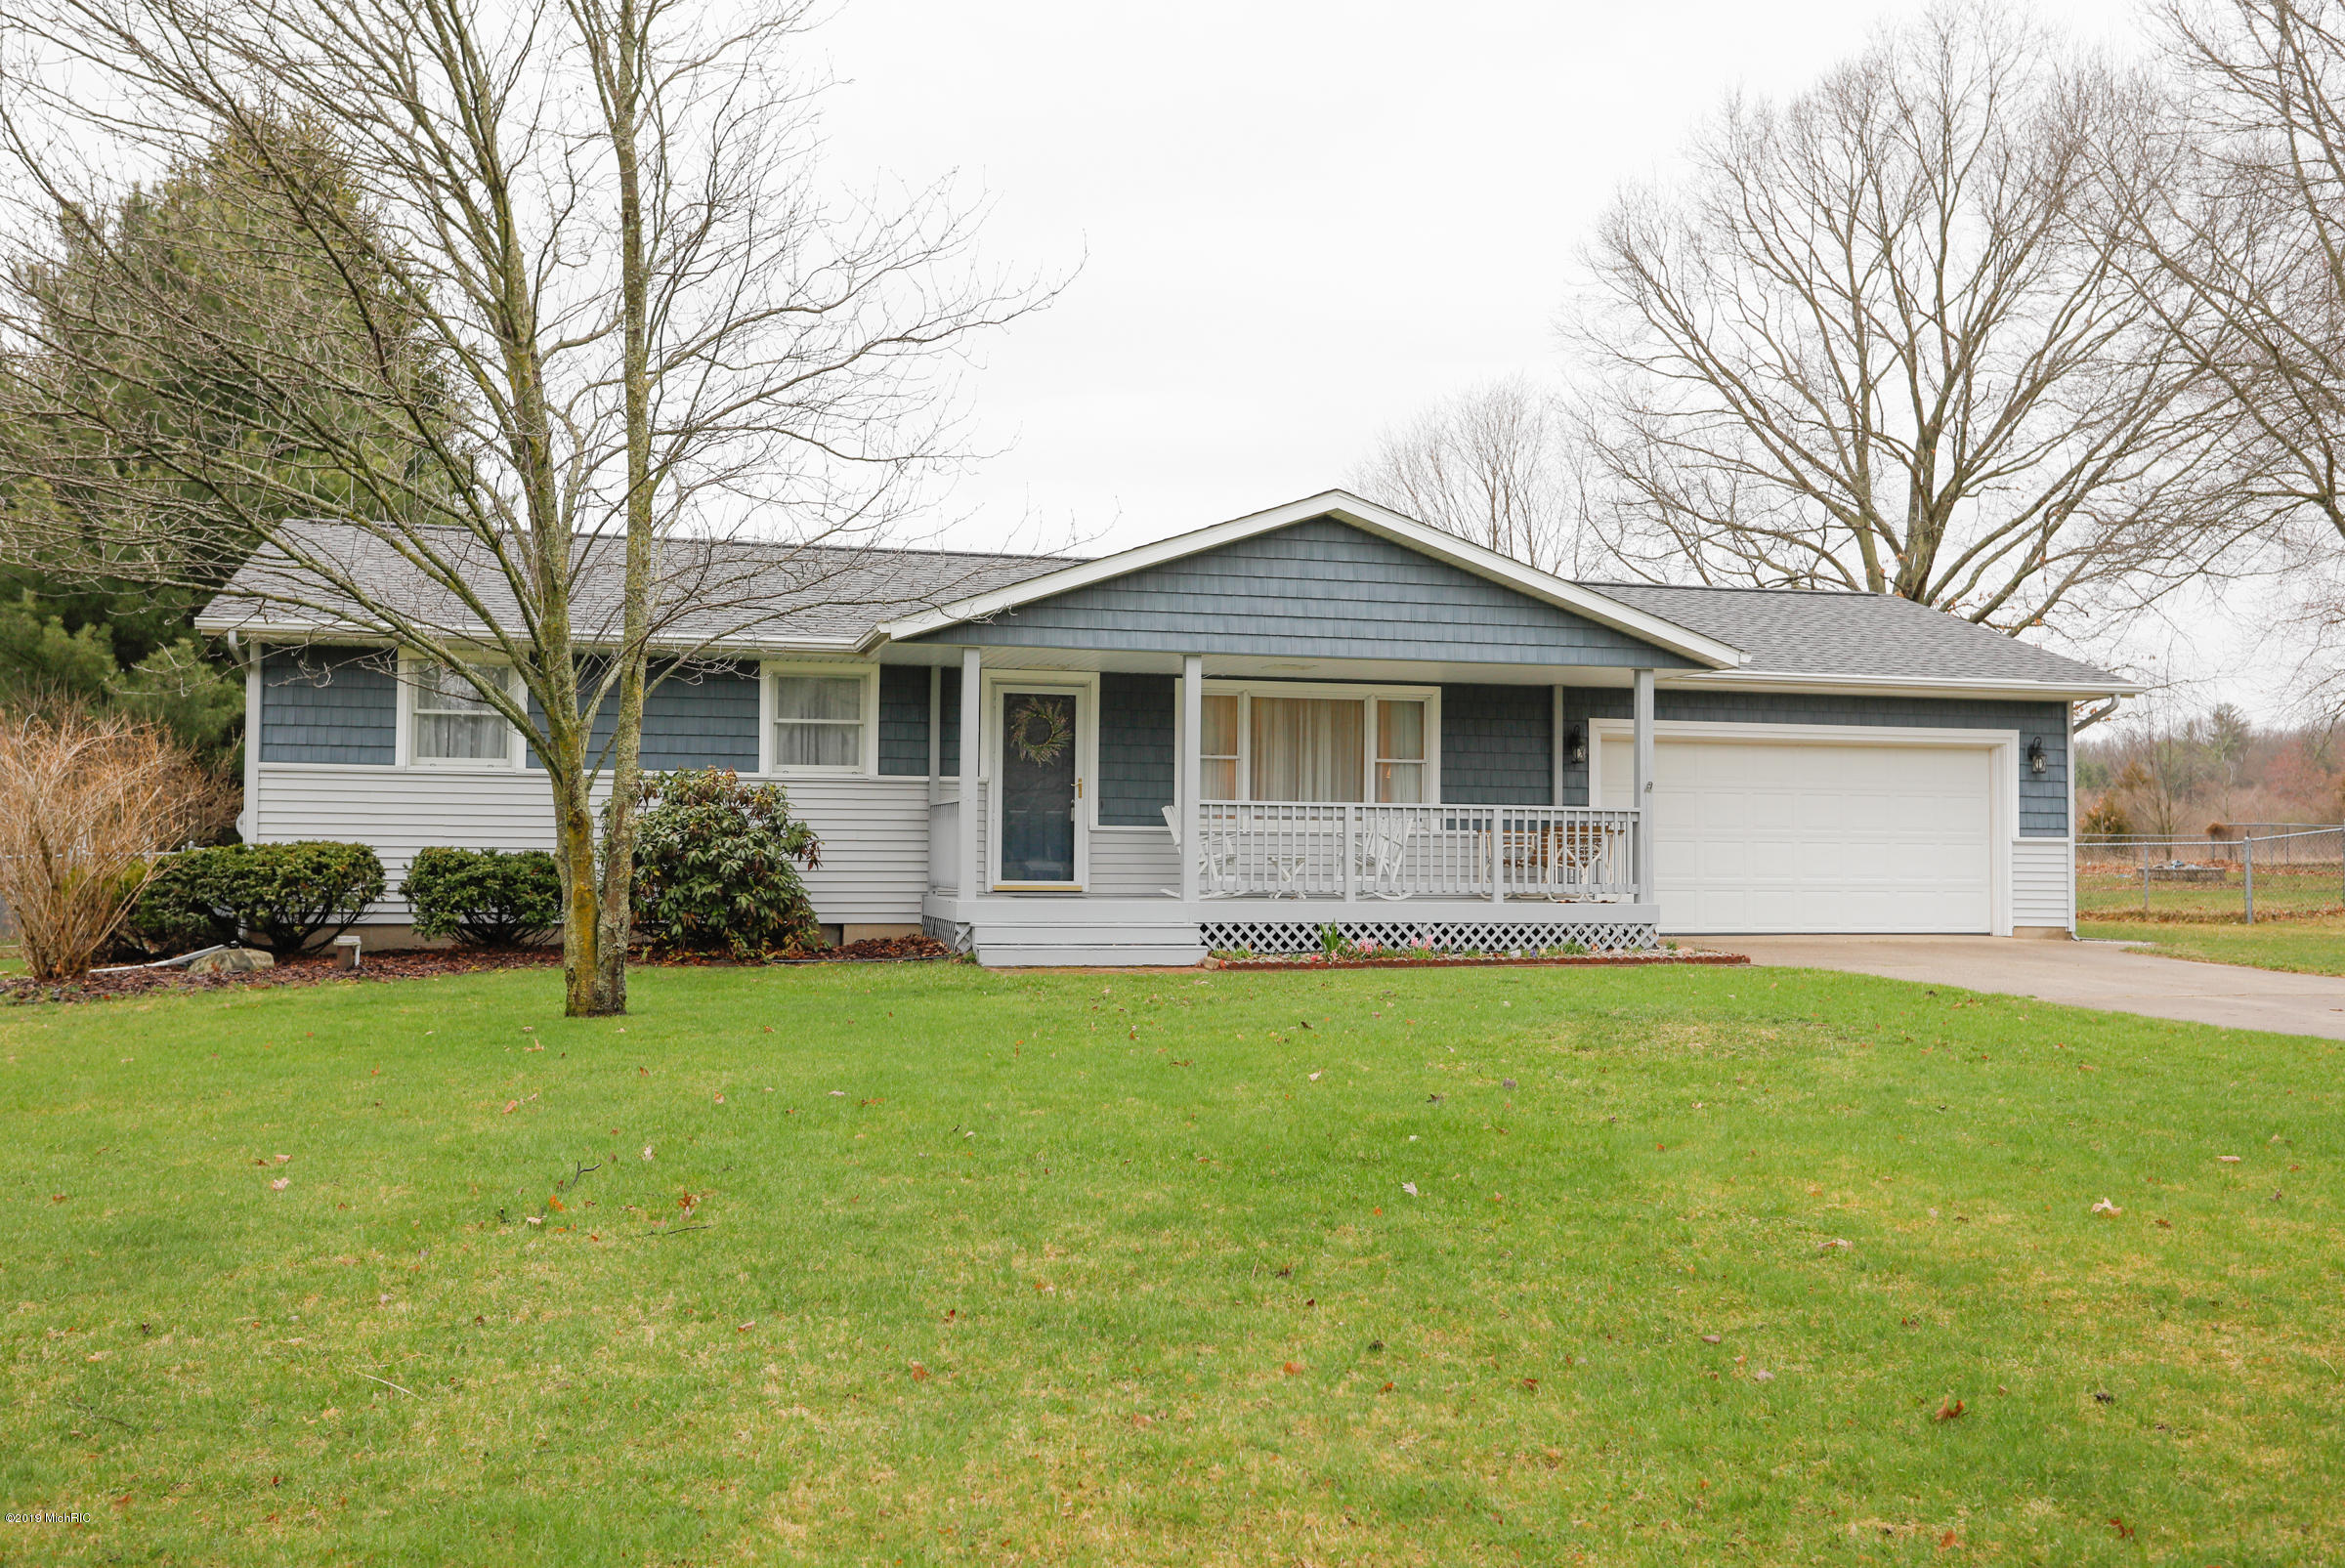 Photo for 22322 Woodhenge Drive, Mattawan, MI 49071 (MLS # 19013202)